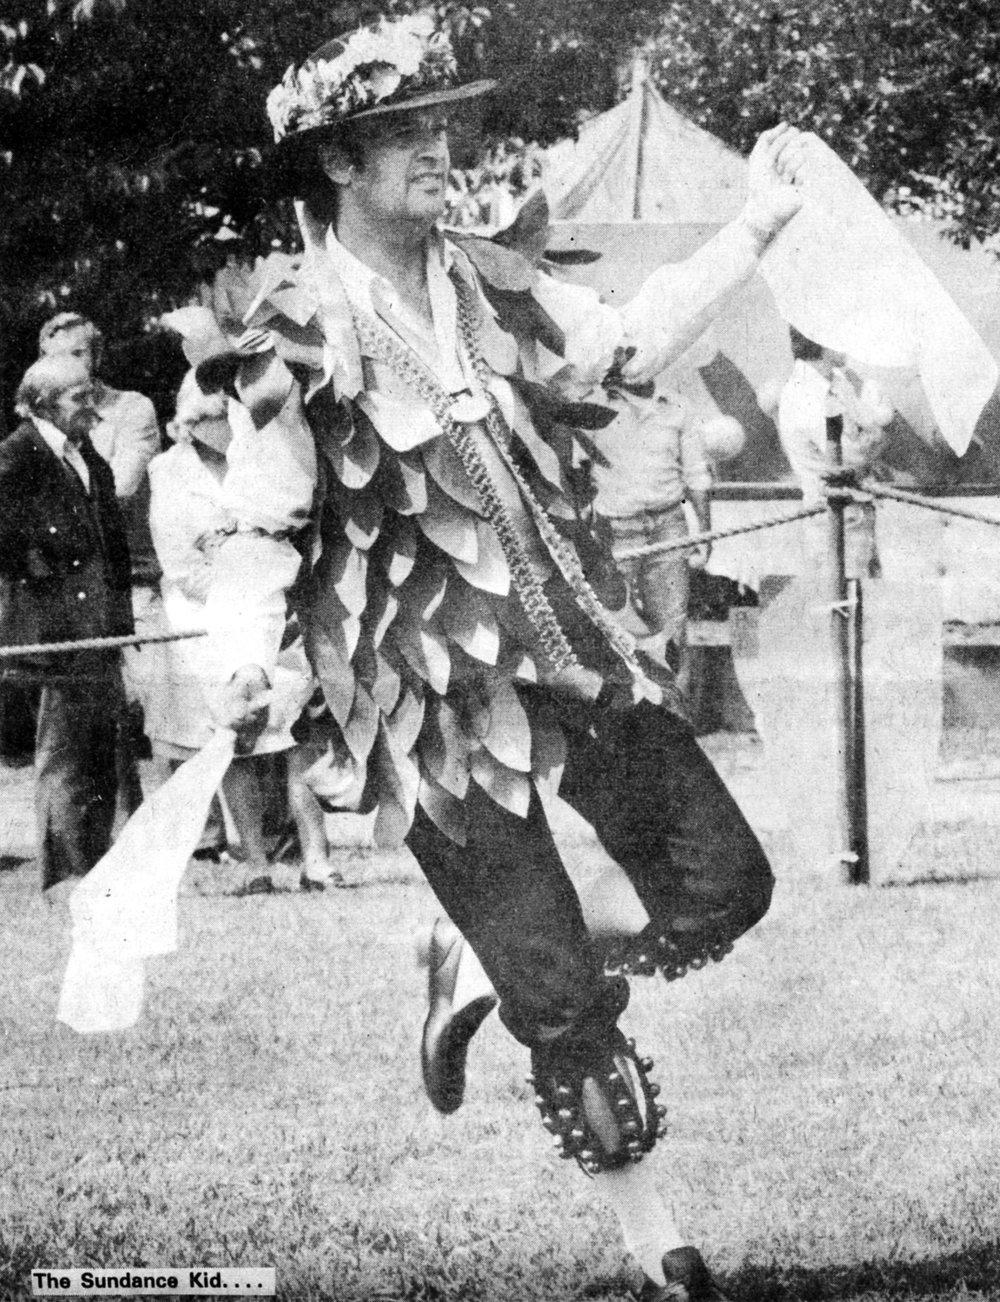 "n 1977, I was ""Foreman of the Morris"" with English Miscellany - here dancing a jig (Princess Royal - Fieldtown) in Radlett (Herts.) on 9th July. Photo scanned from a copy of the local paper.Note the 19 inch hankies. Specially made as I found a reference in The Morris Book to using hankies that size- much larger than you buy in the shops. Looks much better than the normal ones. The jacket was made for three musicians - myself, Tony Barret, and Graham Lyndon Jones, by Tony B's wife. Sadly Tony B and Graham are no longer with us. I wore it recently as a costume when singing in a concert as Papageno, from The Magic Flute!"